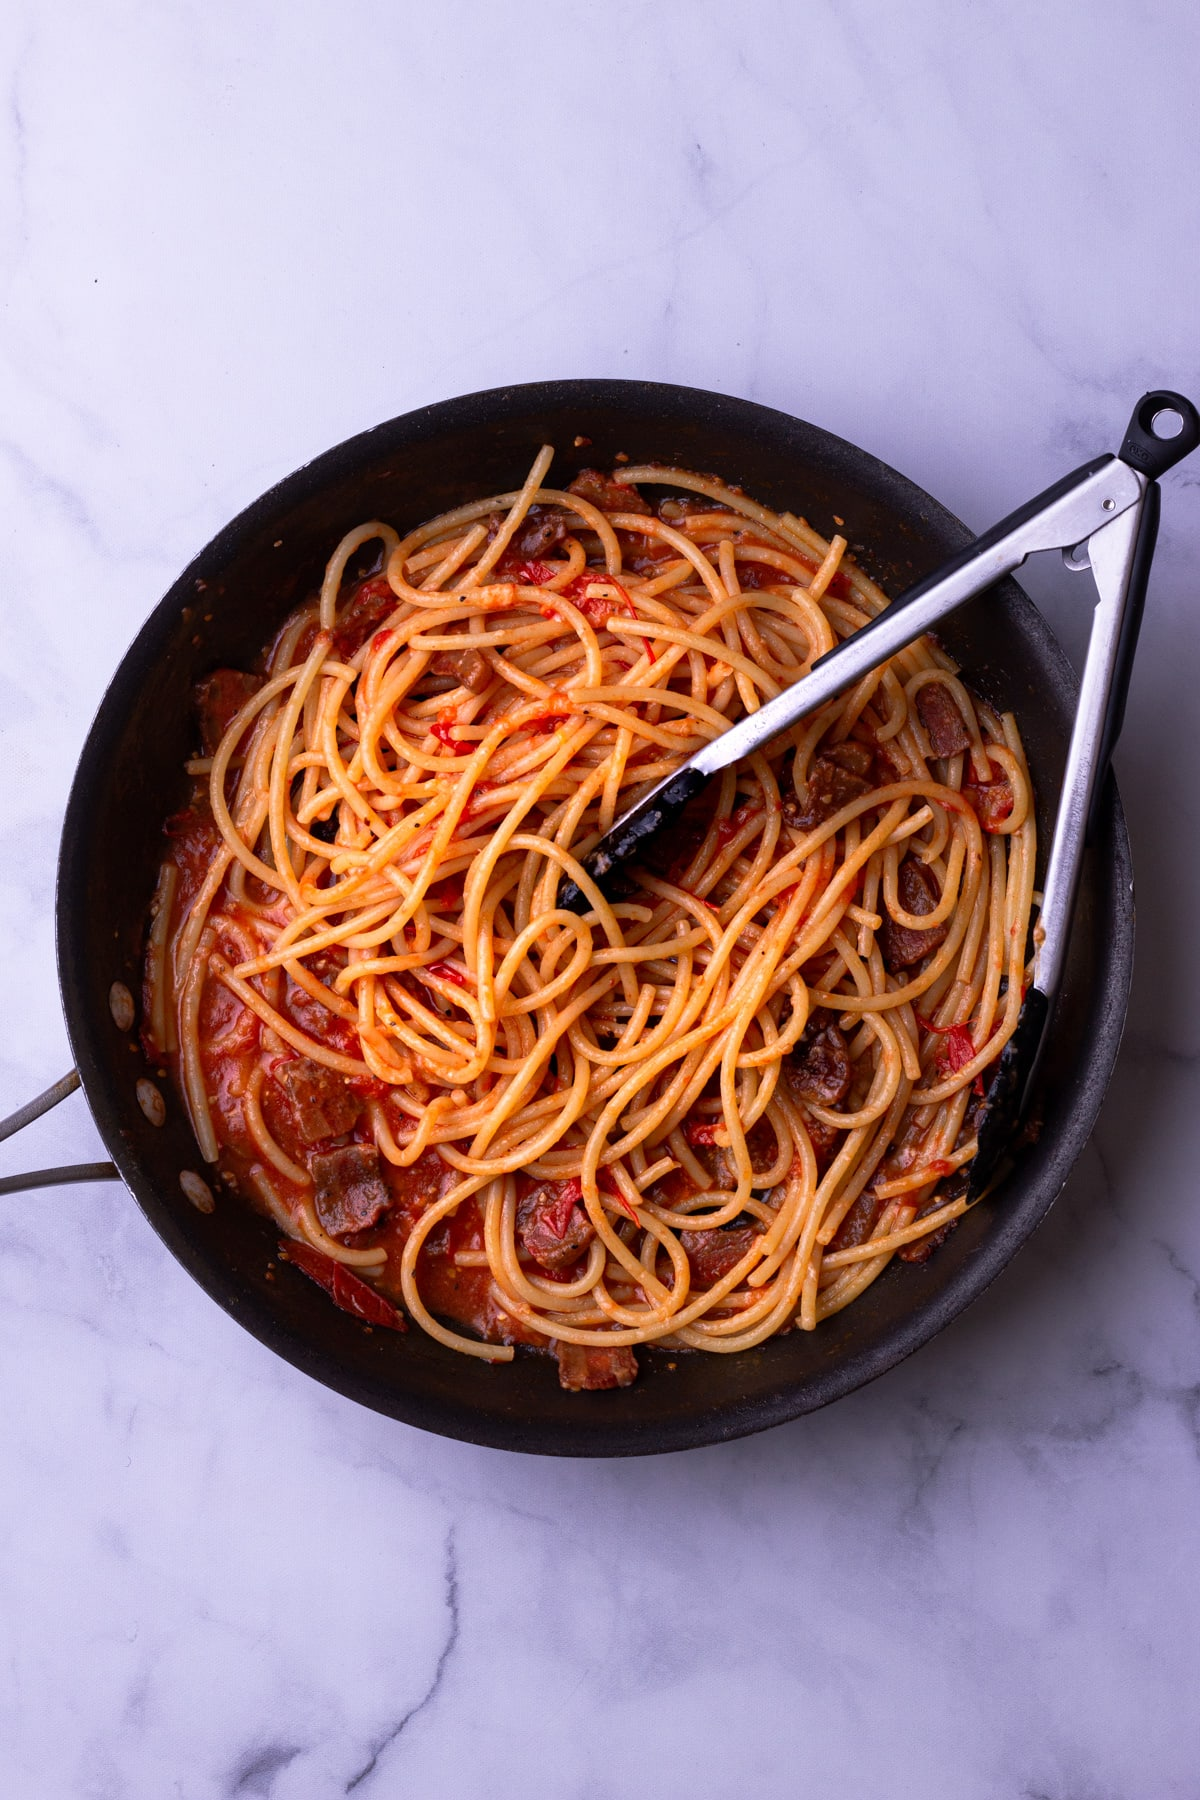 Overhead view of a pan with pasta and tomato-guanciale sauce with tongs on a marble surface.